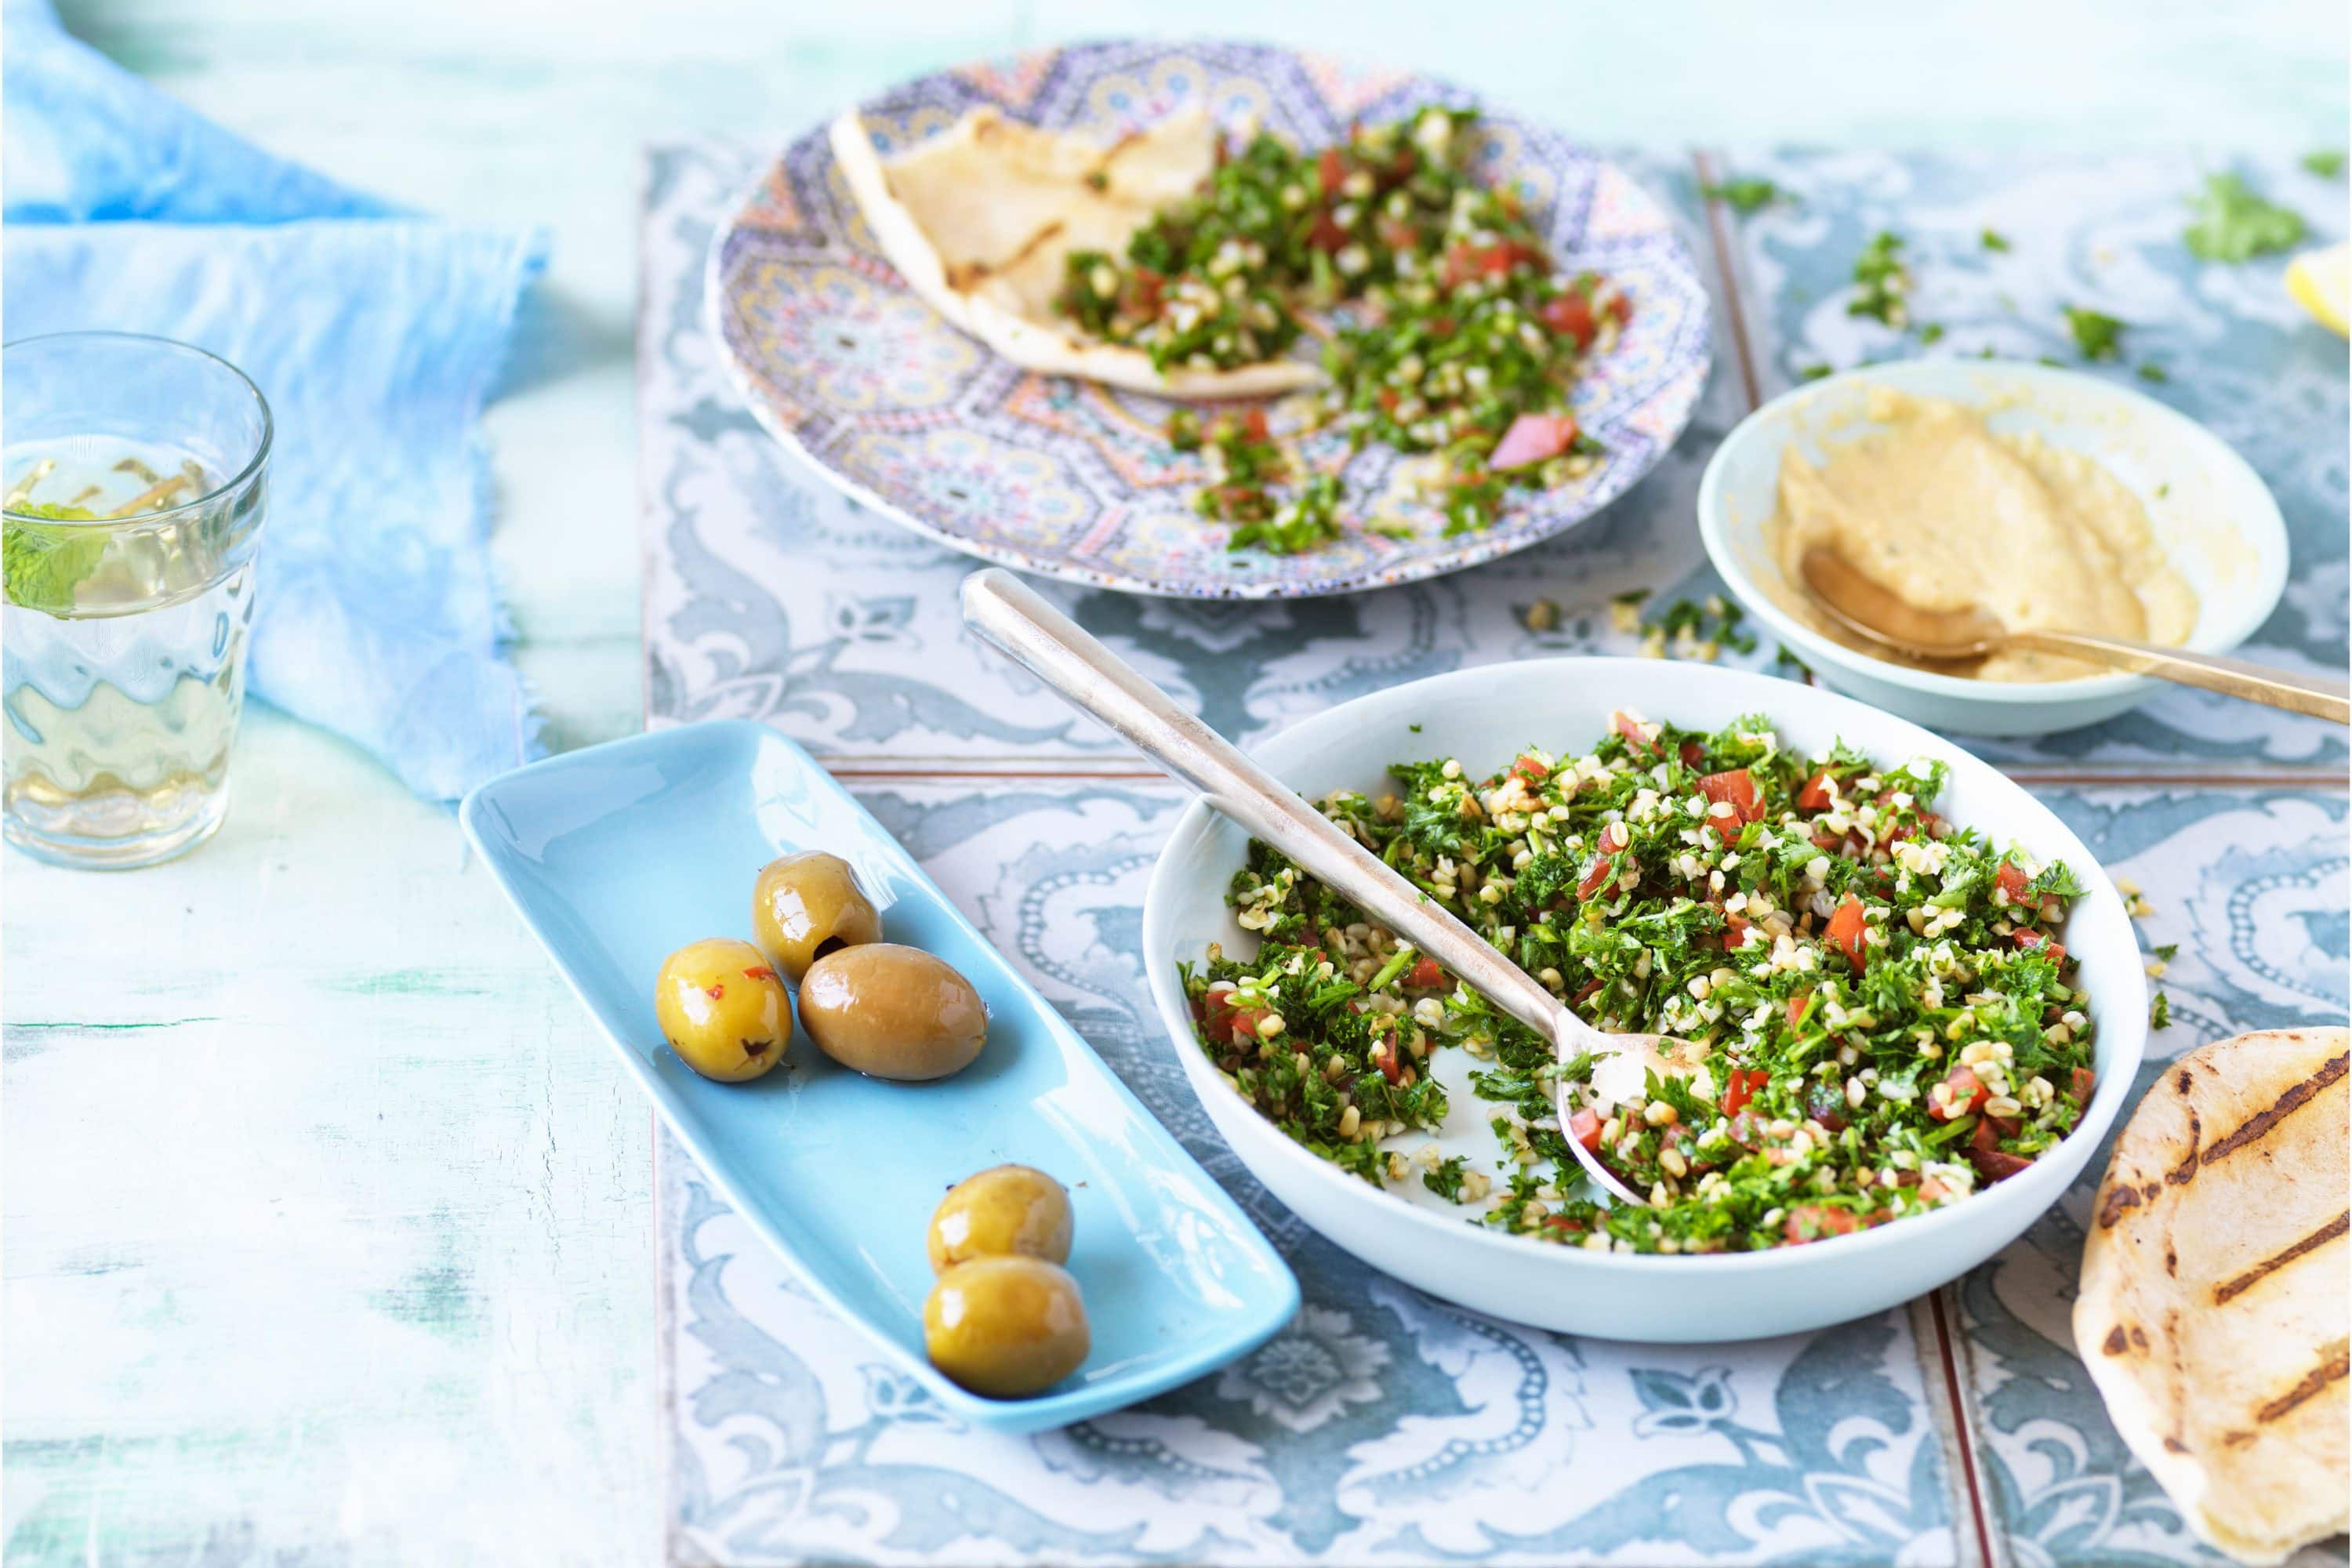 Traditional Arabic food dishes